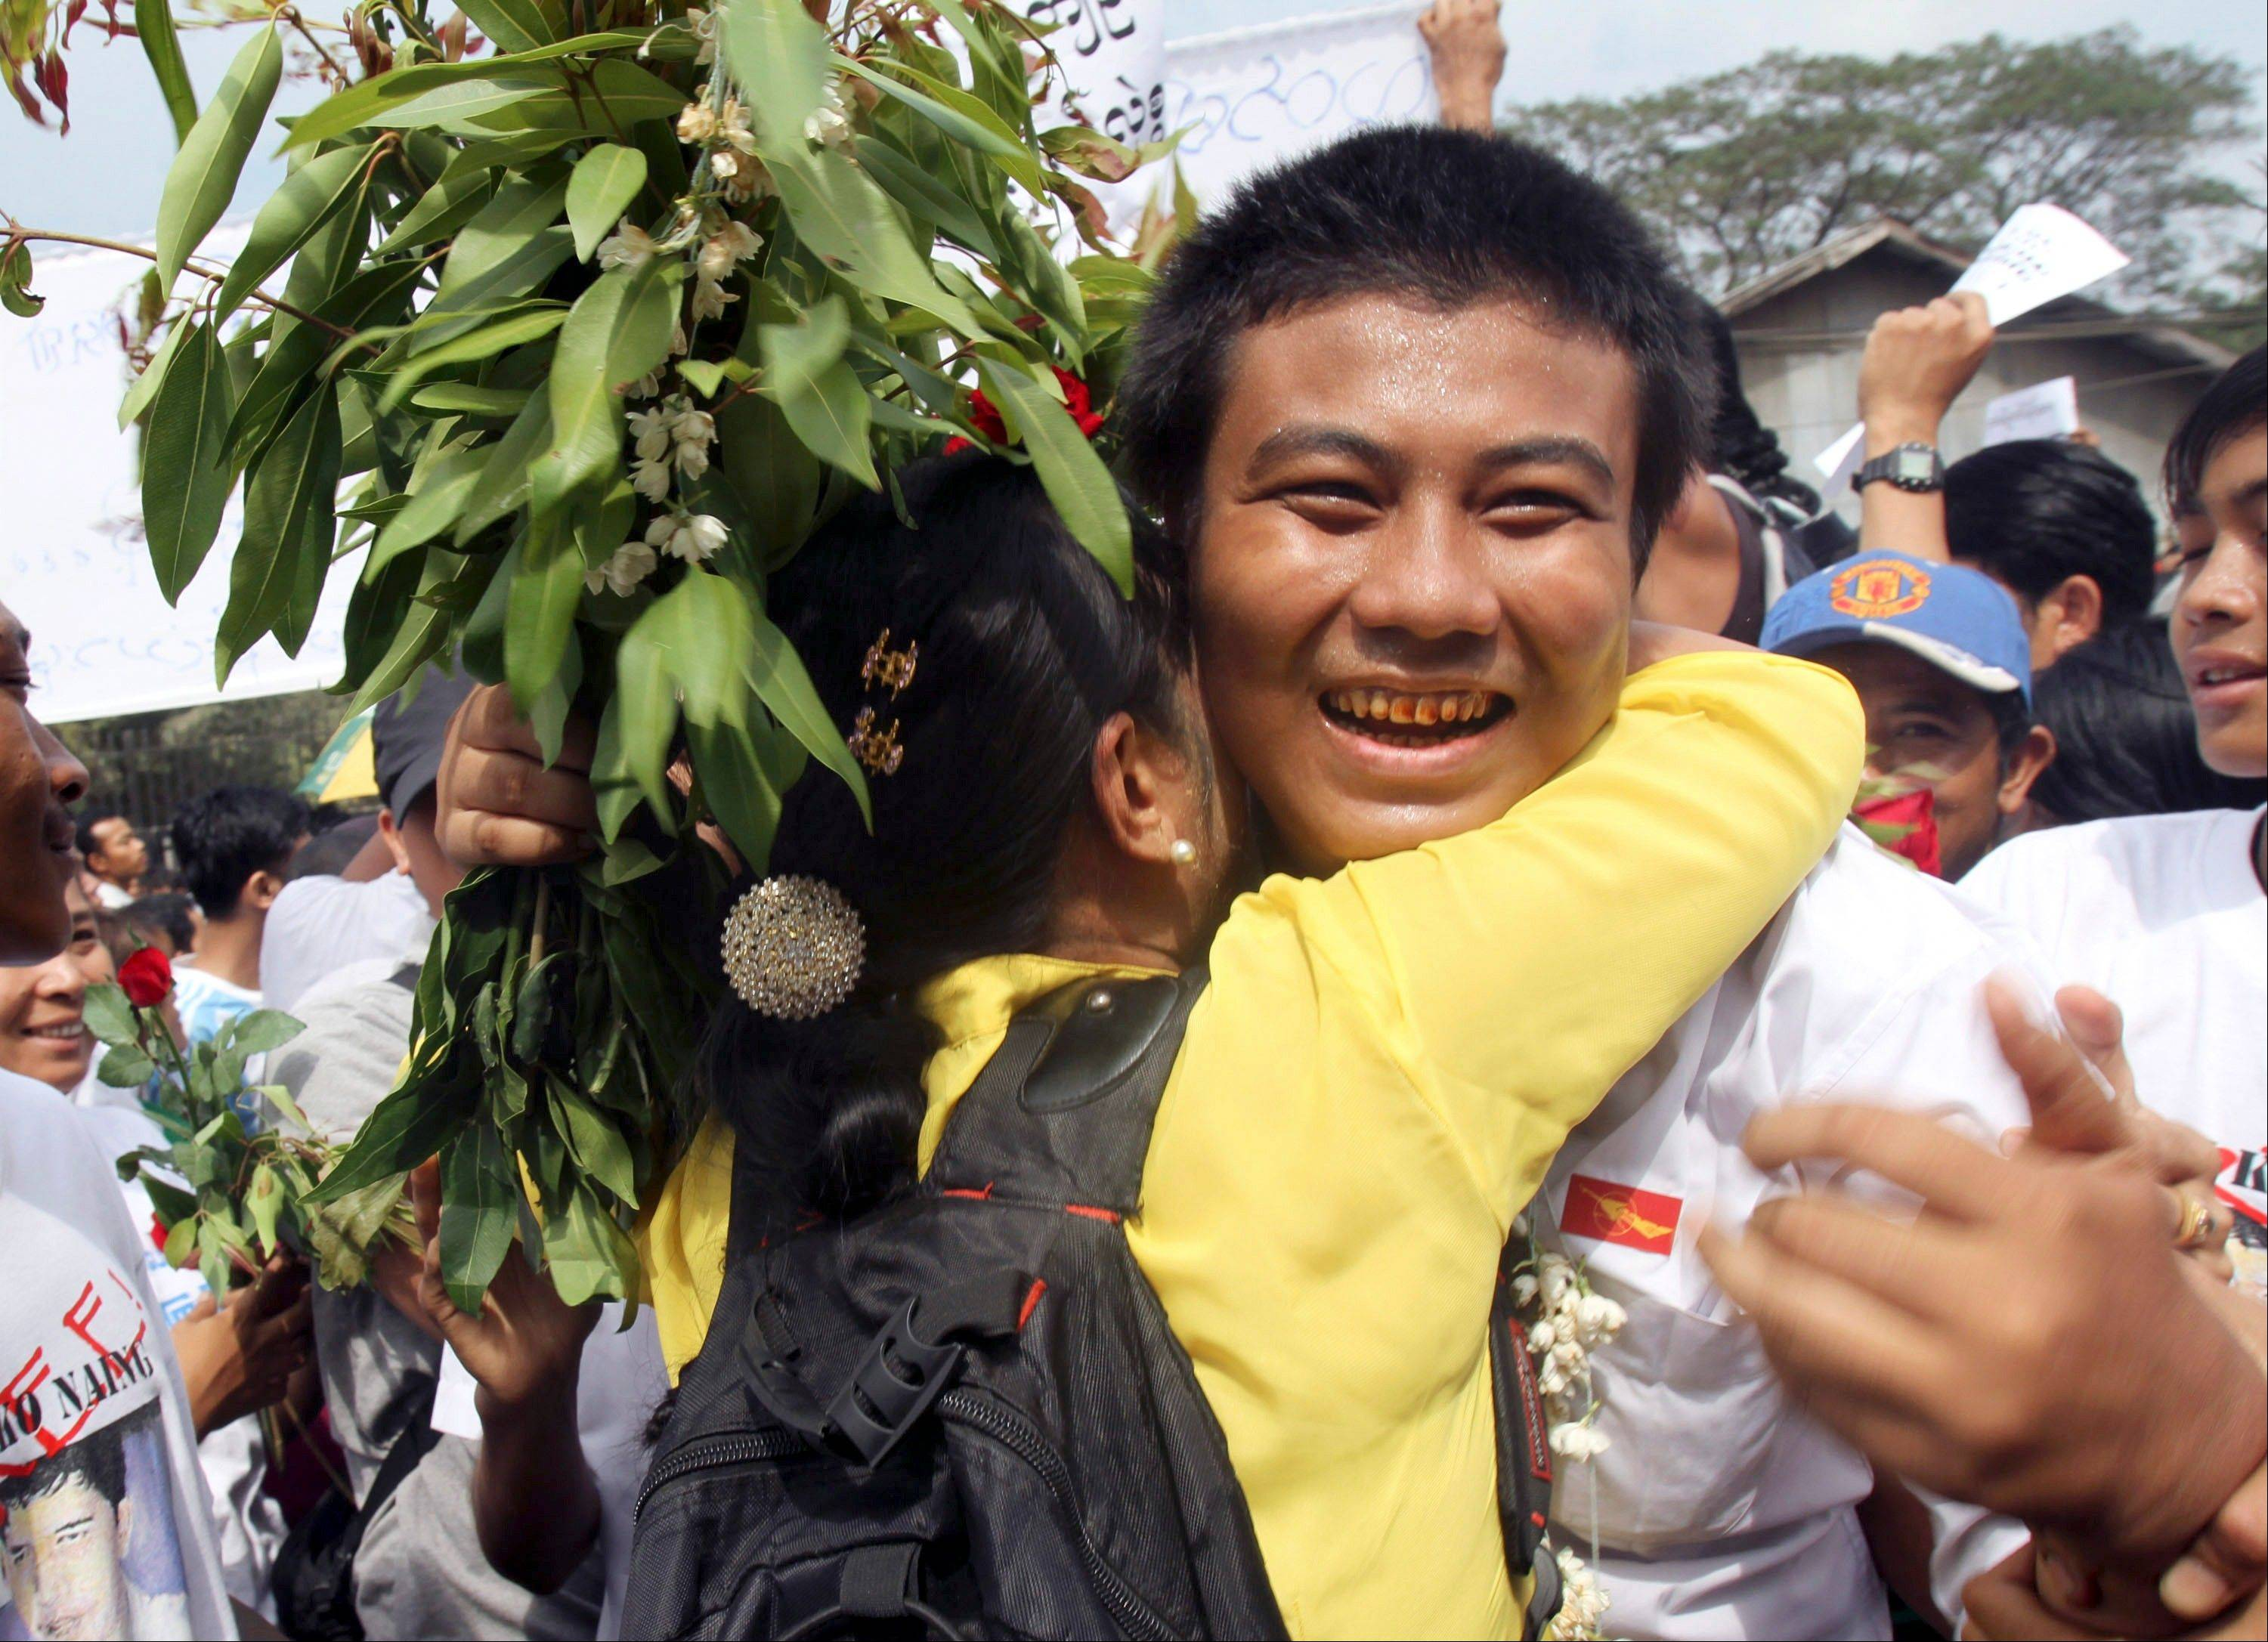 A freed Myanmar political prisoner, right, is welcomed by his friend as he comes out of Insein prison in Yangon, Myanmar, in January. Myanmar's government said Monday it has granted amnesties for 514 prisoners, including some foreigners, on humanitarian grounds.